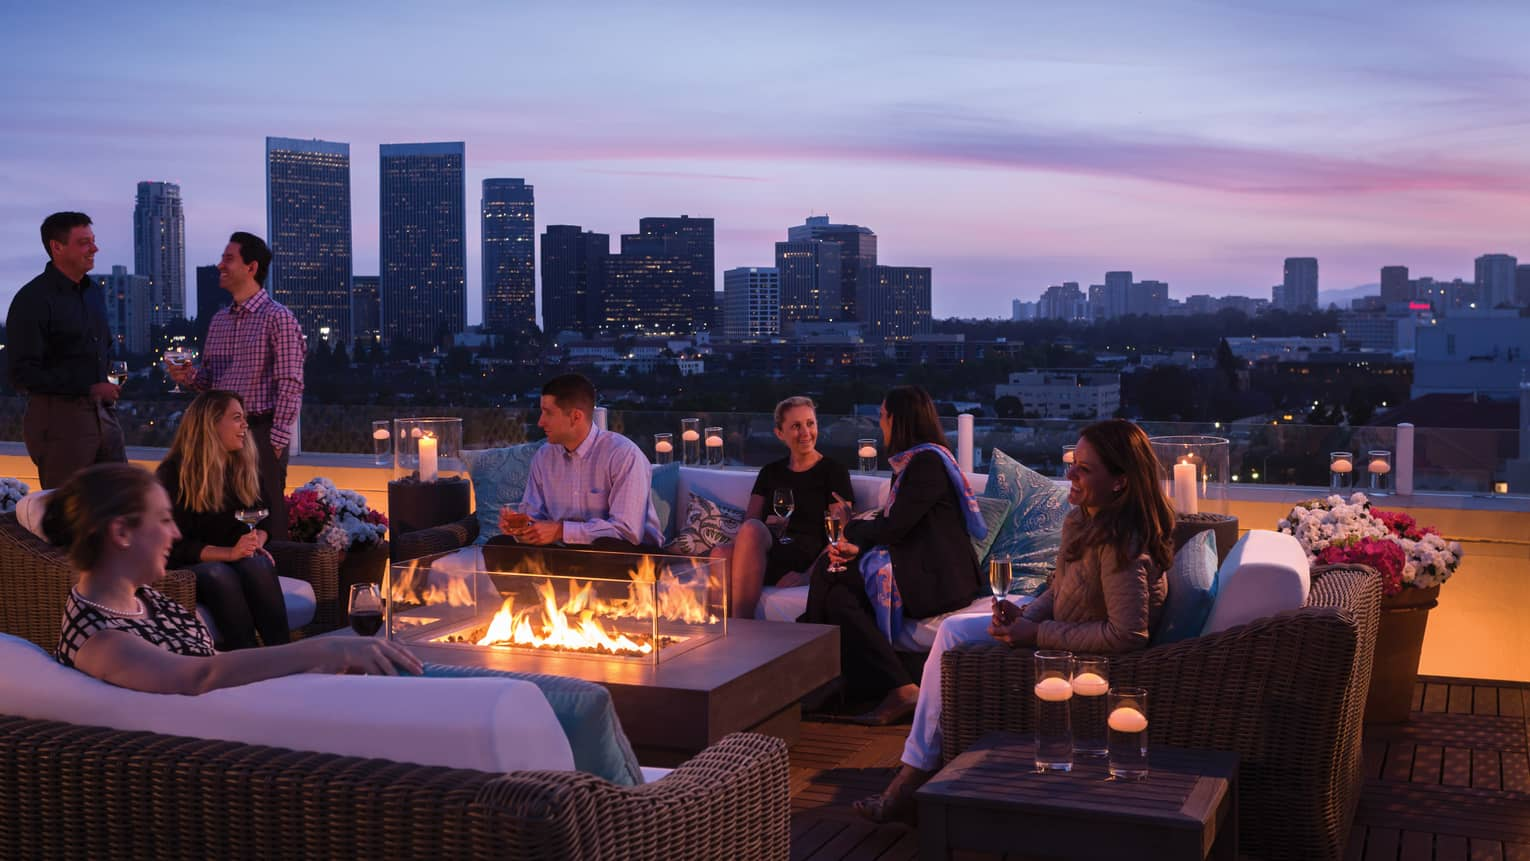 Guests socialize around outdoor fireplace Veranda Suite rooftop terrace, city views at dusk